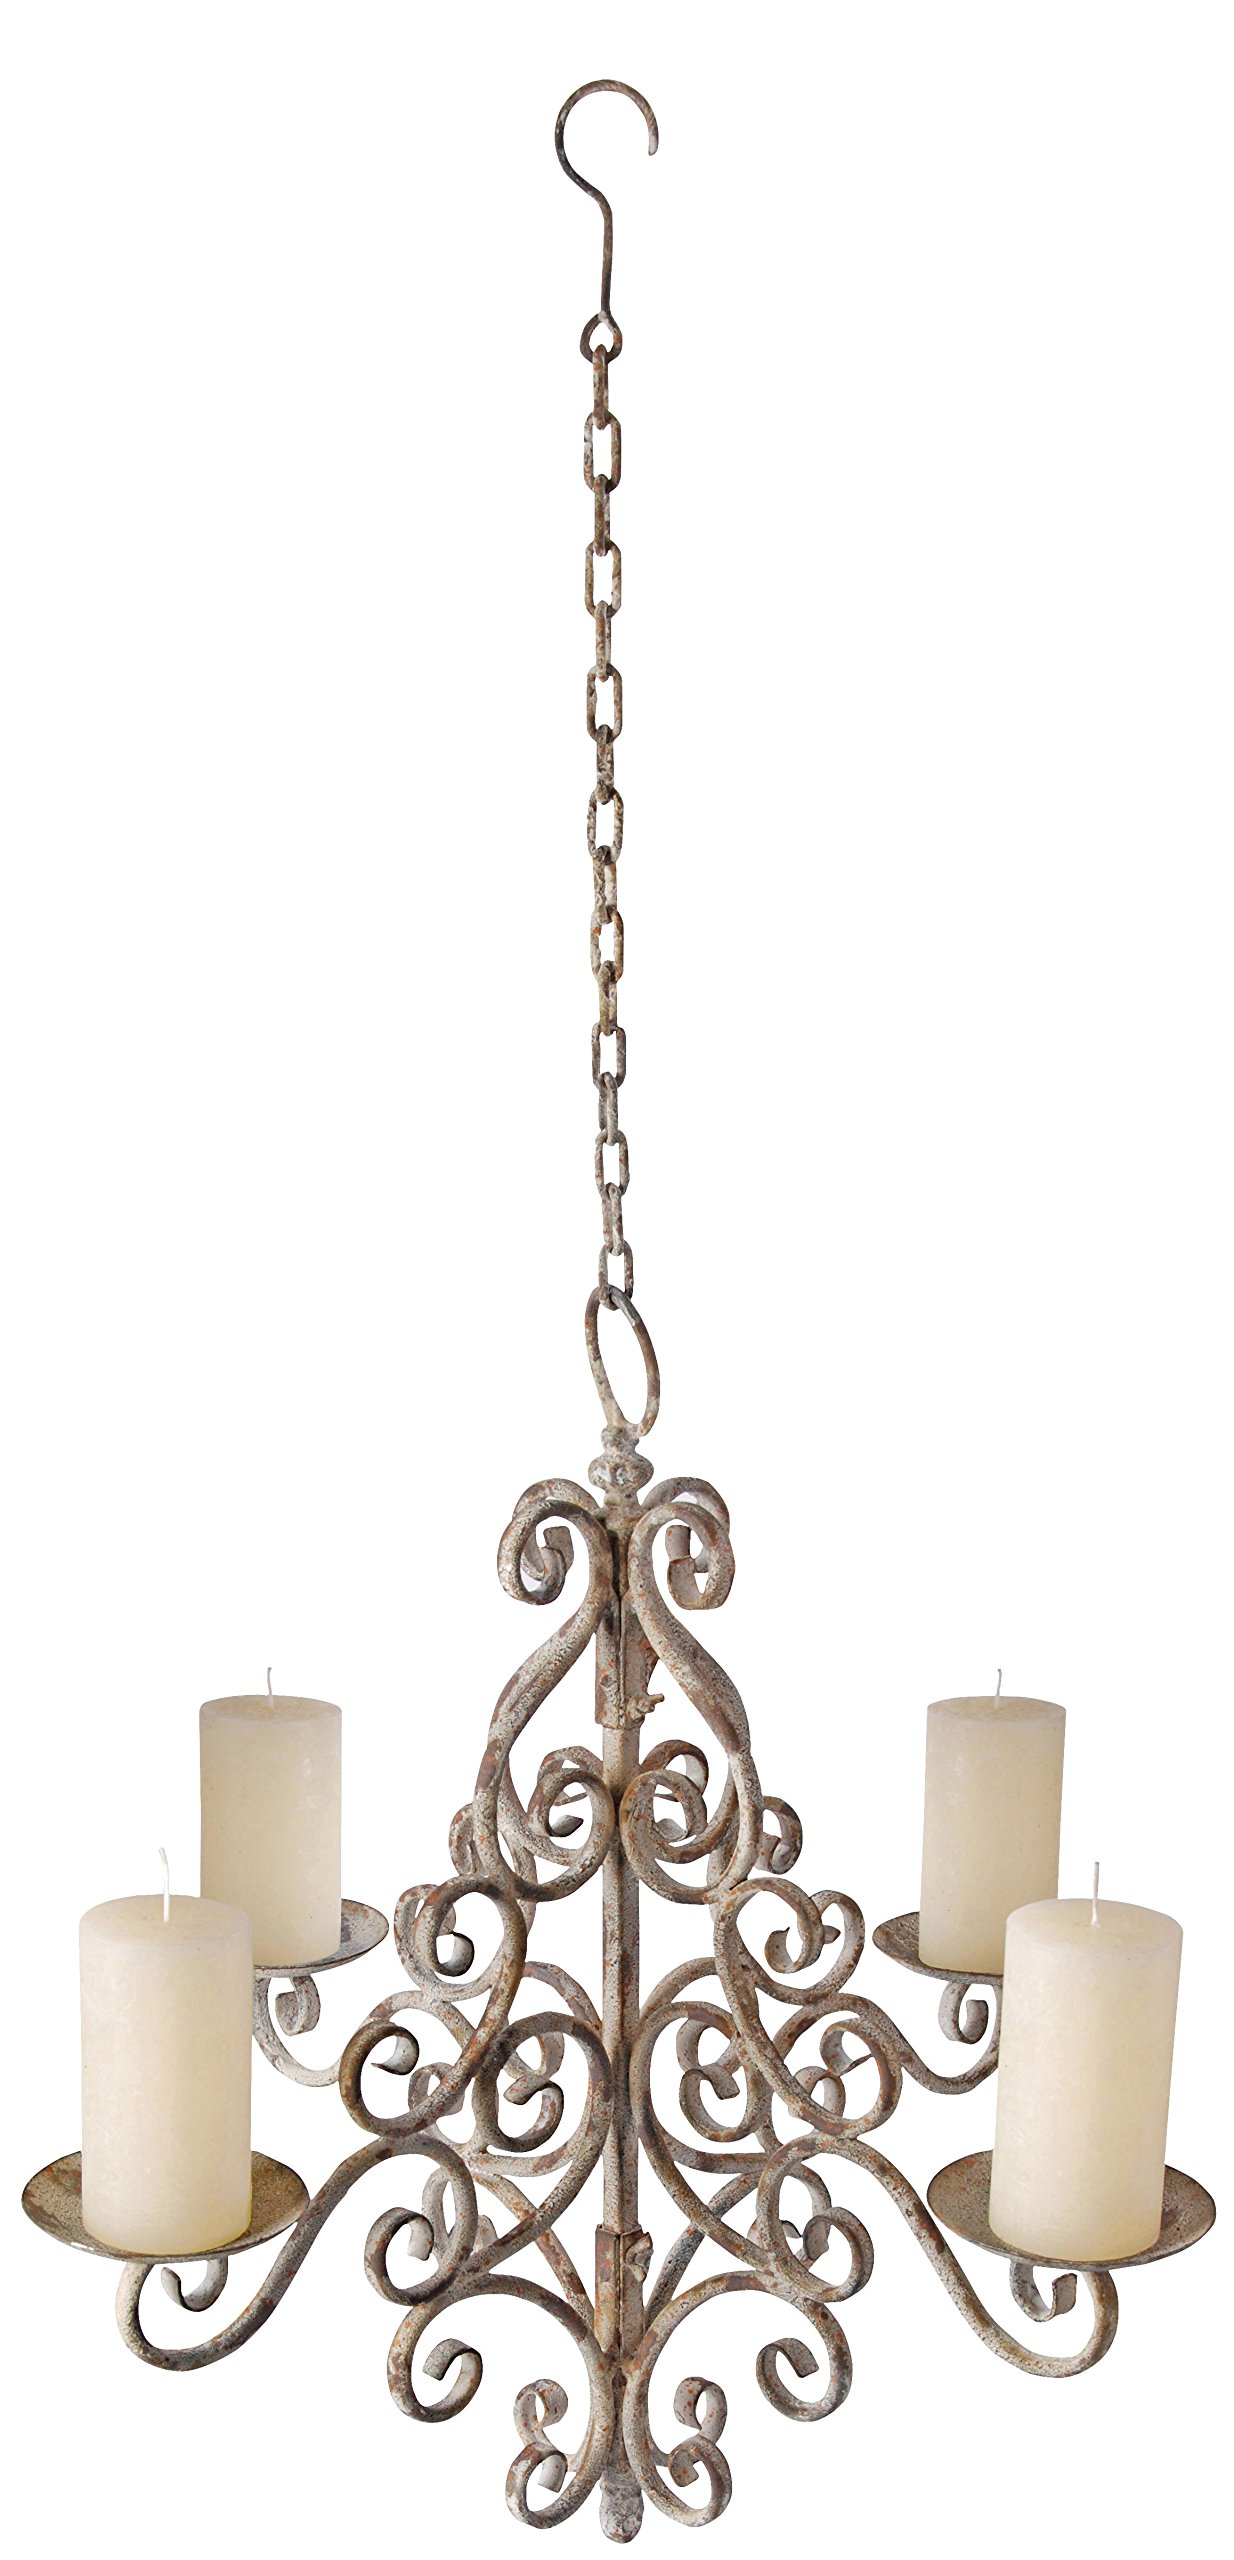 Esschert Design AM06 Aged Metal Chandelier by Esschert Design USA